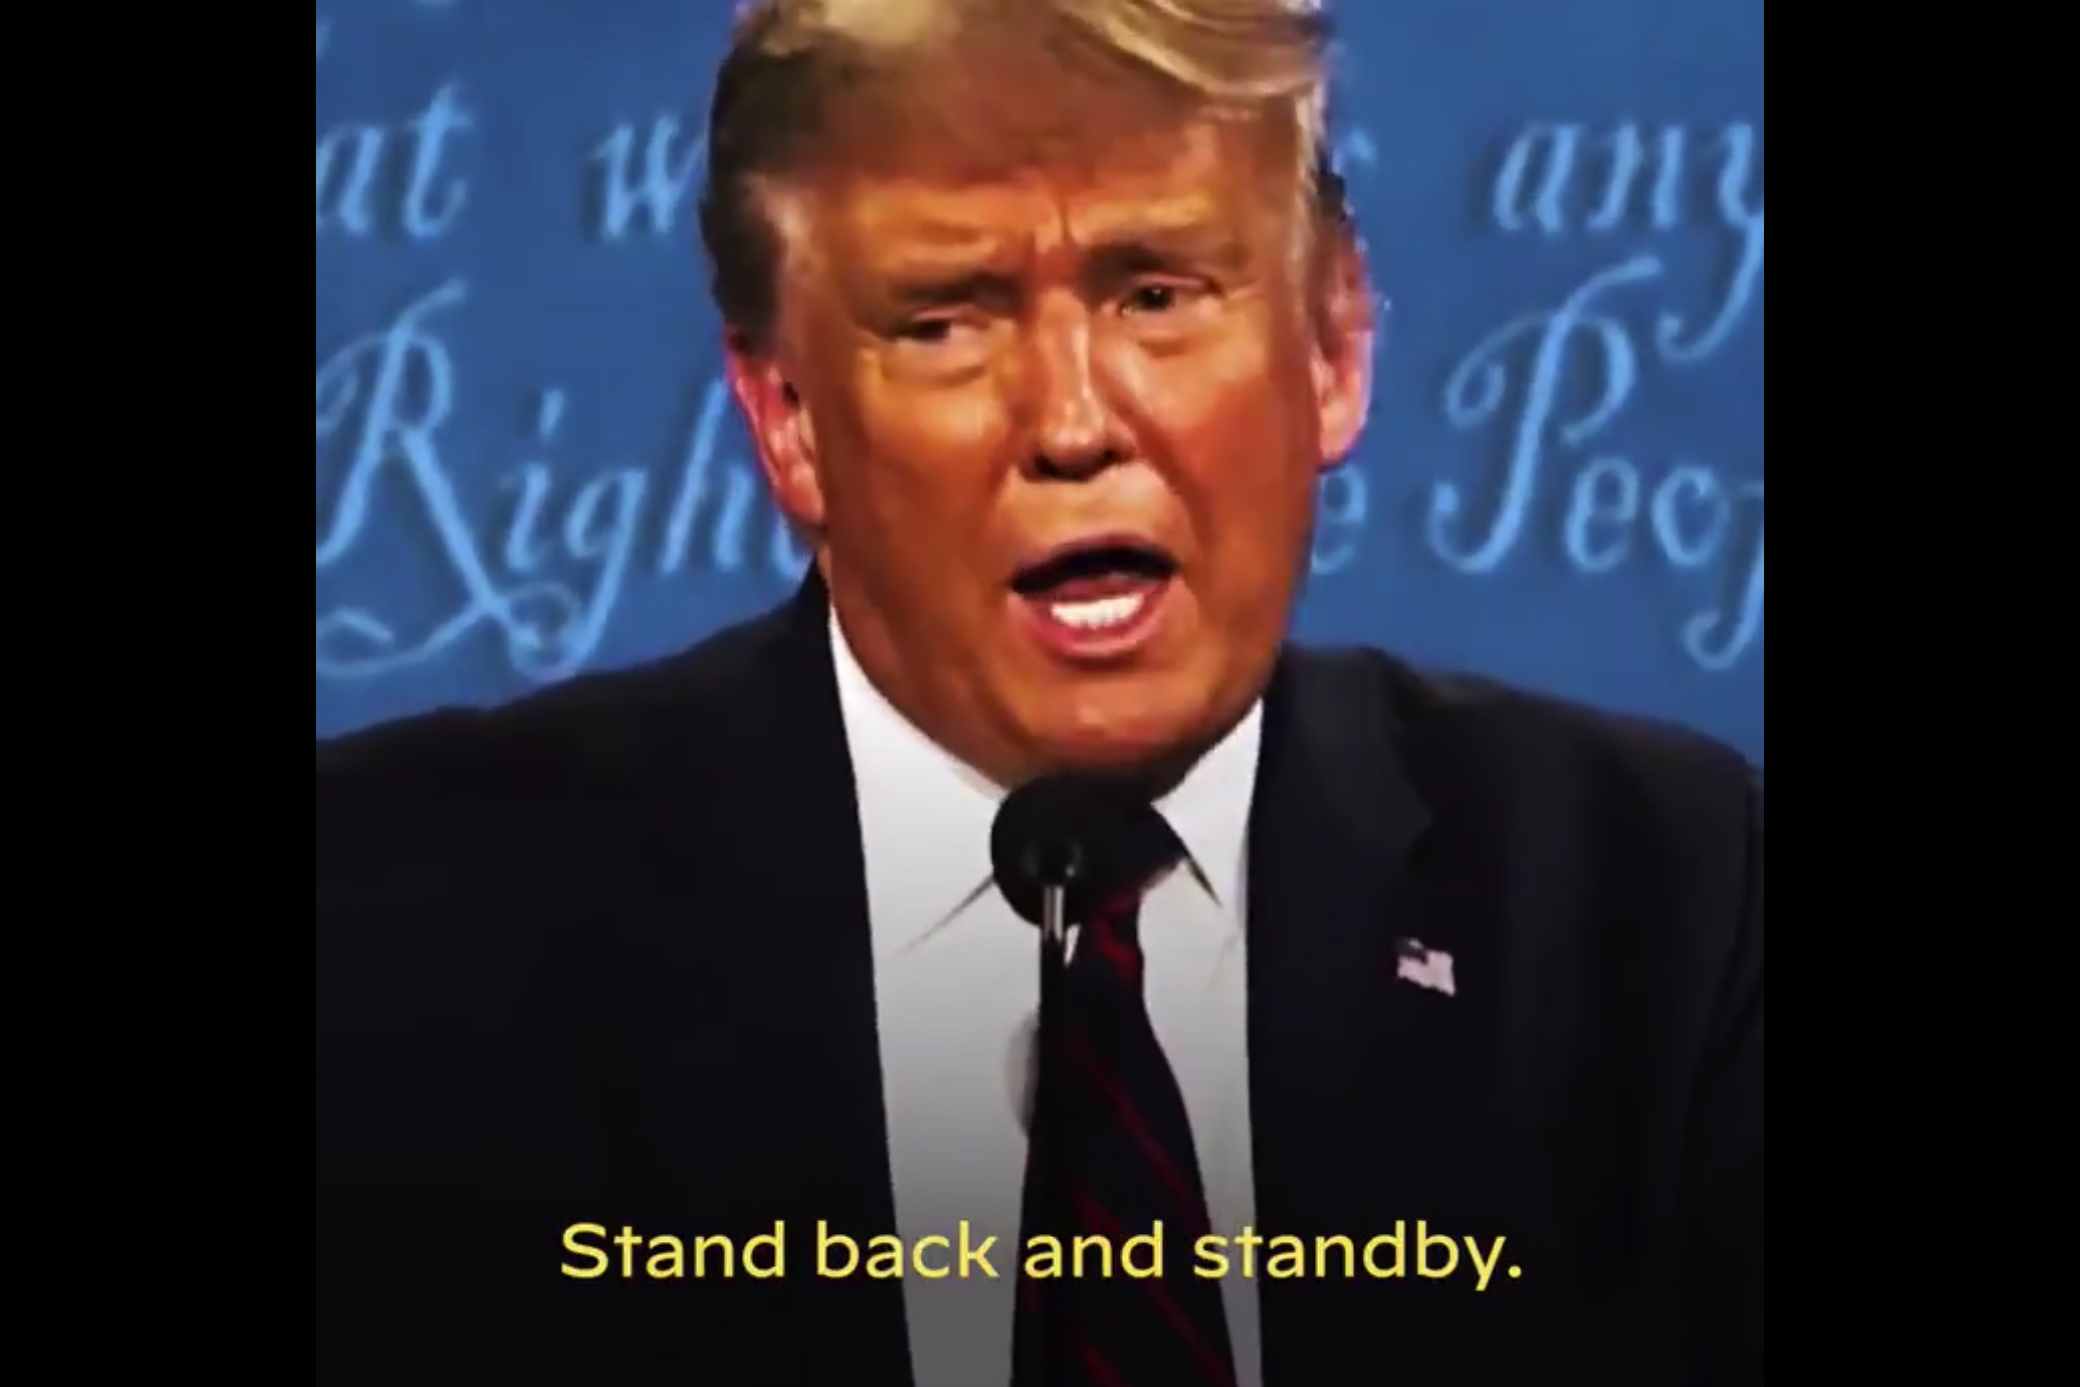 Biden turns Trump's Proud Boys debate moment into a campaign ad